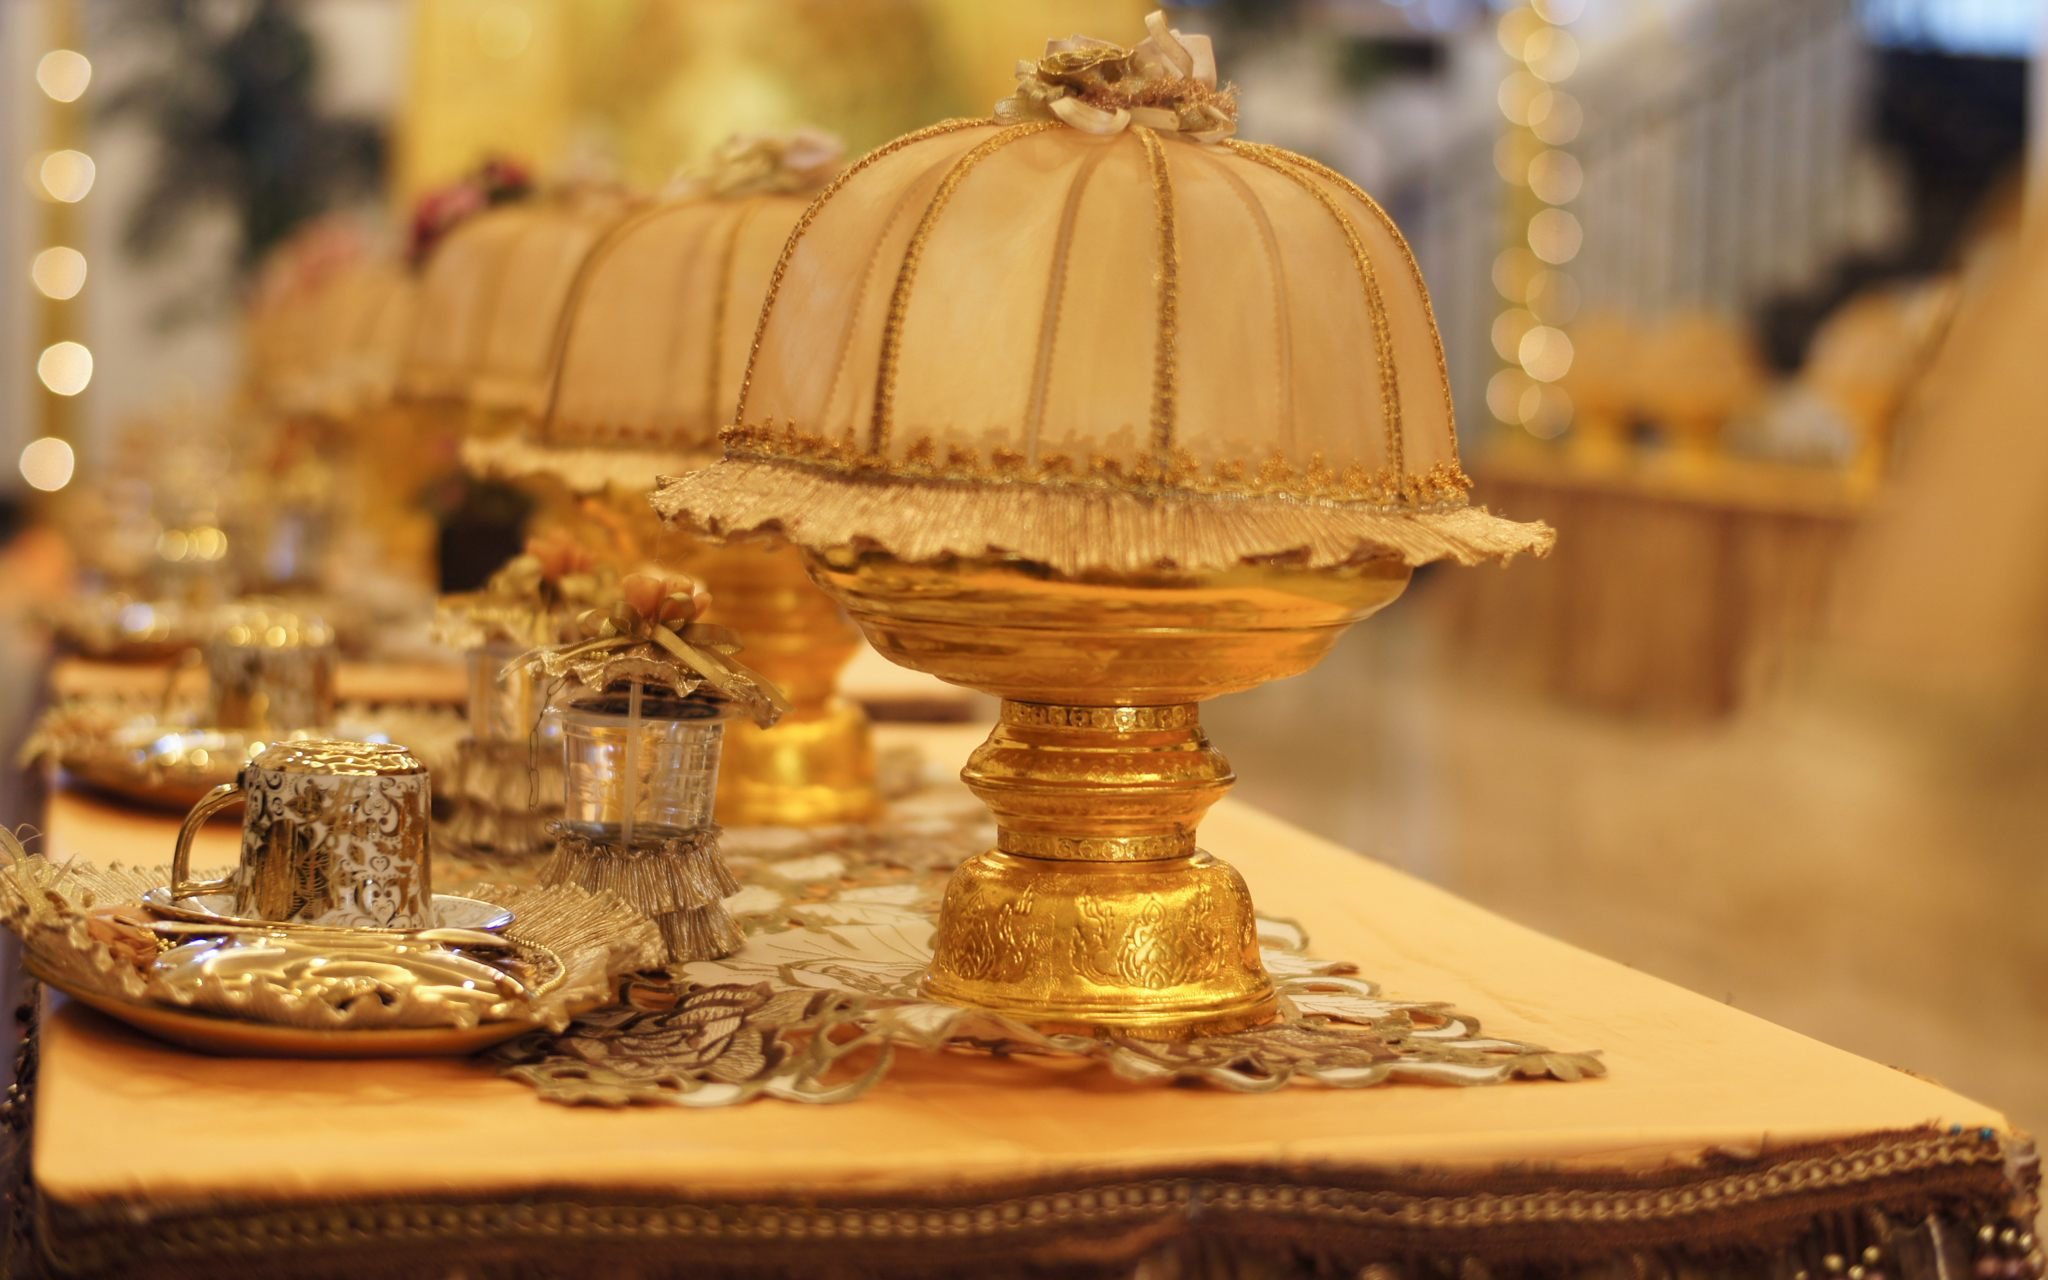 The beautiful ornate gold table settings filled with a number of moist and sweet Makassan desserts only eaten during wedding celebrations.